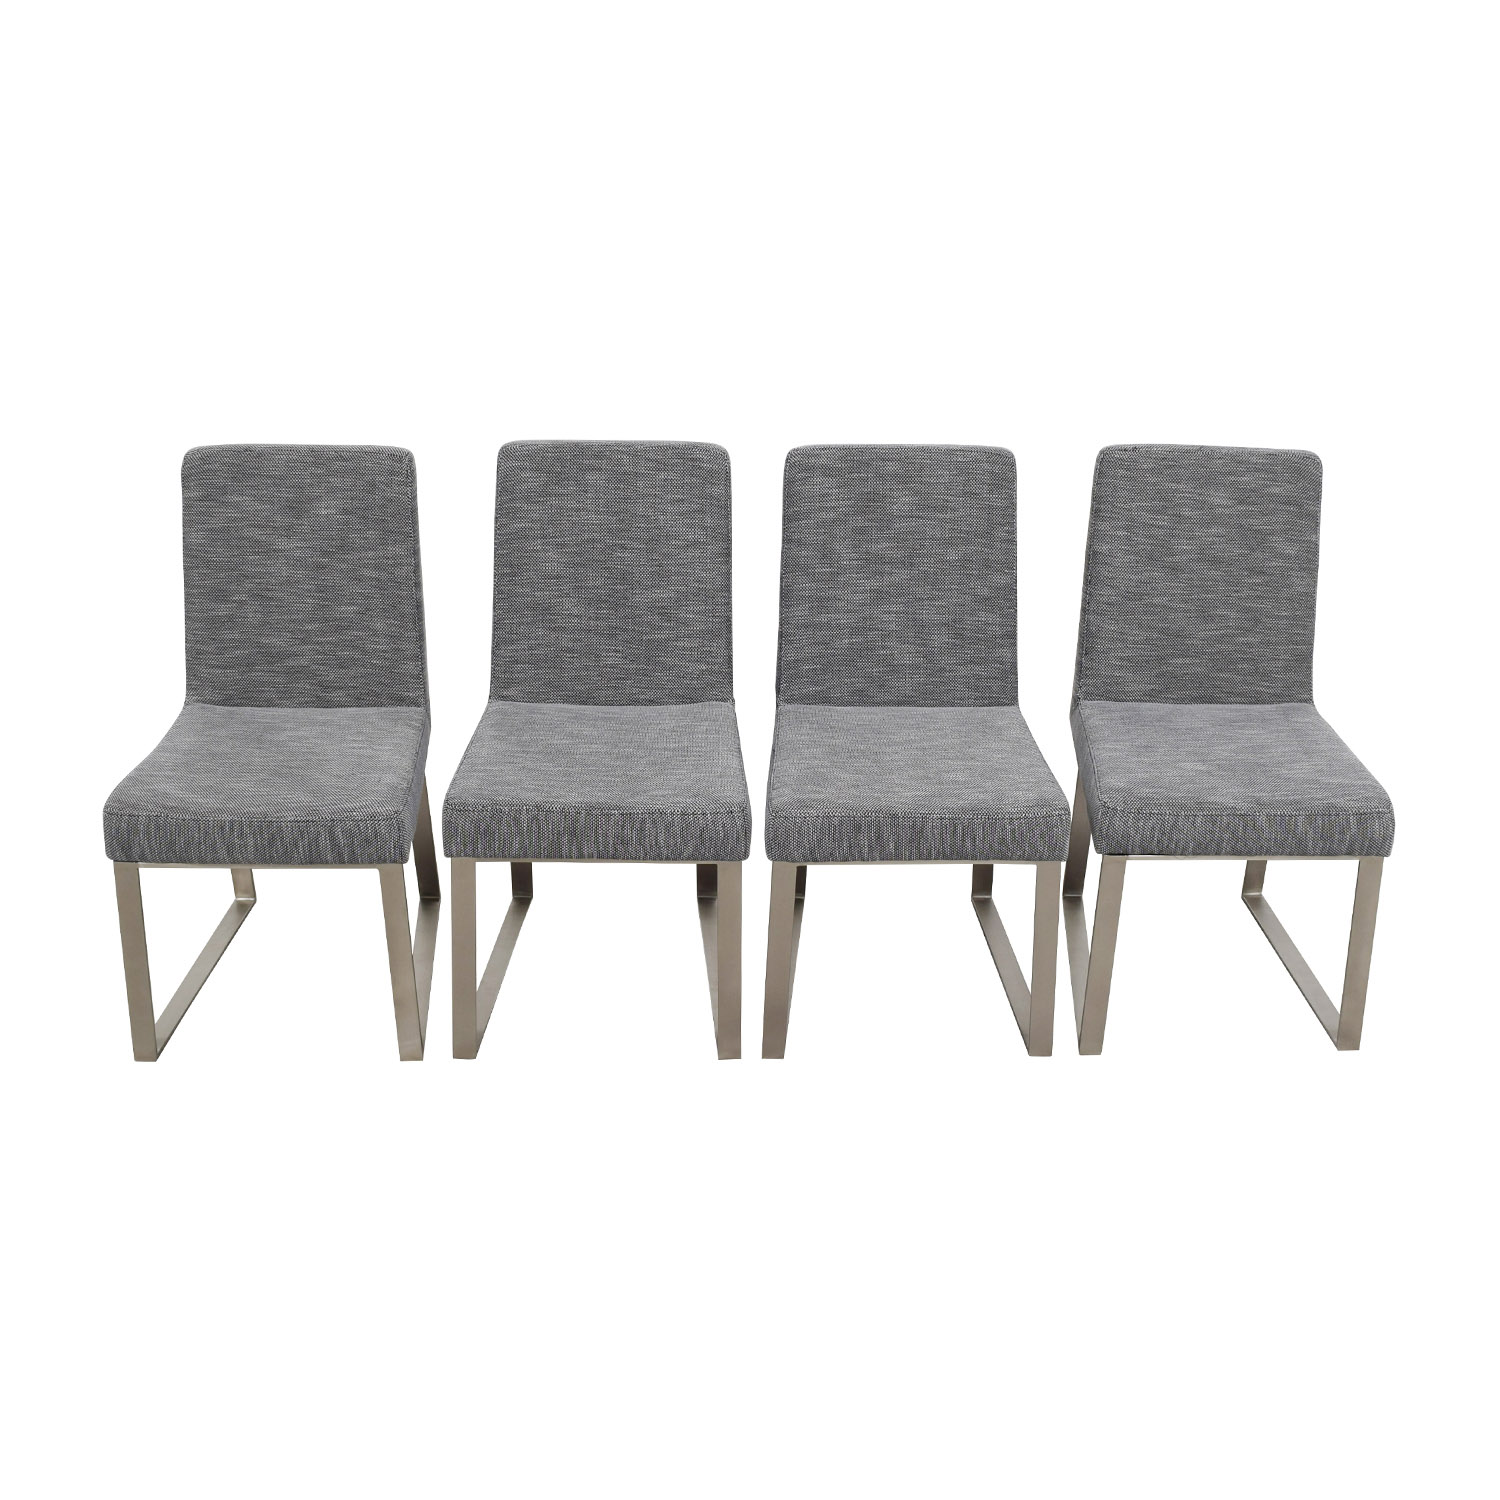 InMod Vivo Grey Chairs / Chairs